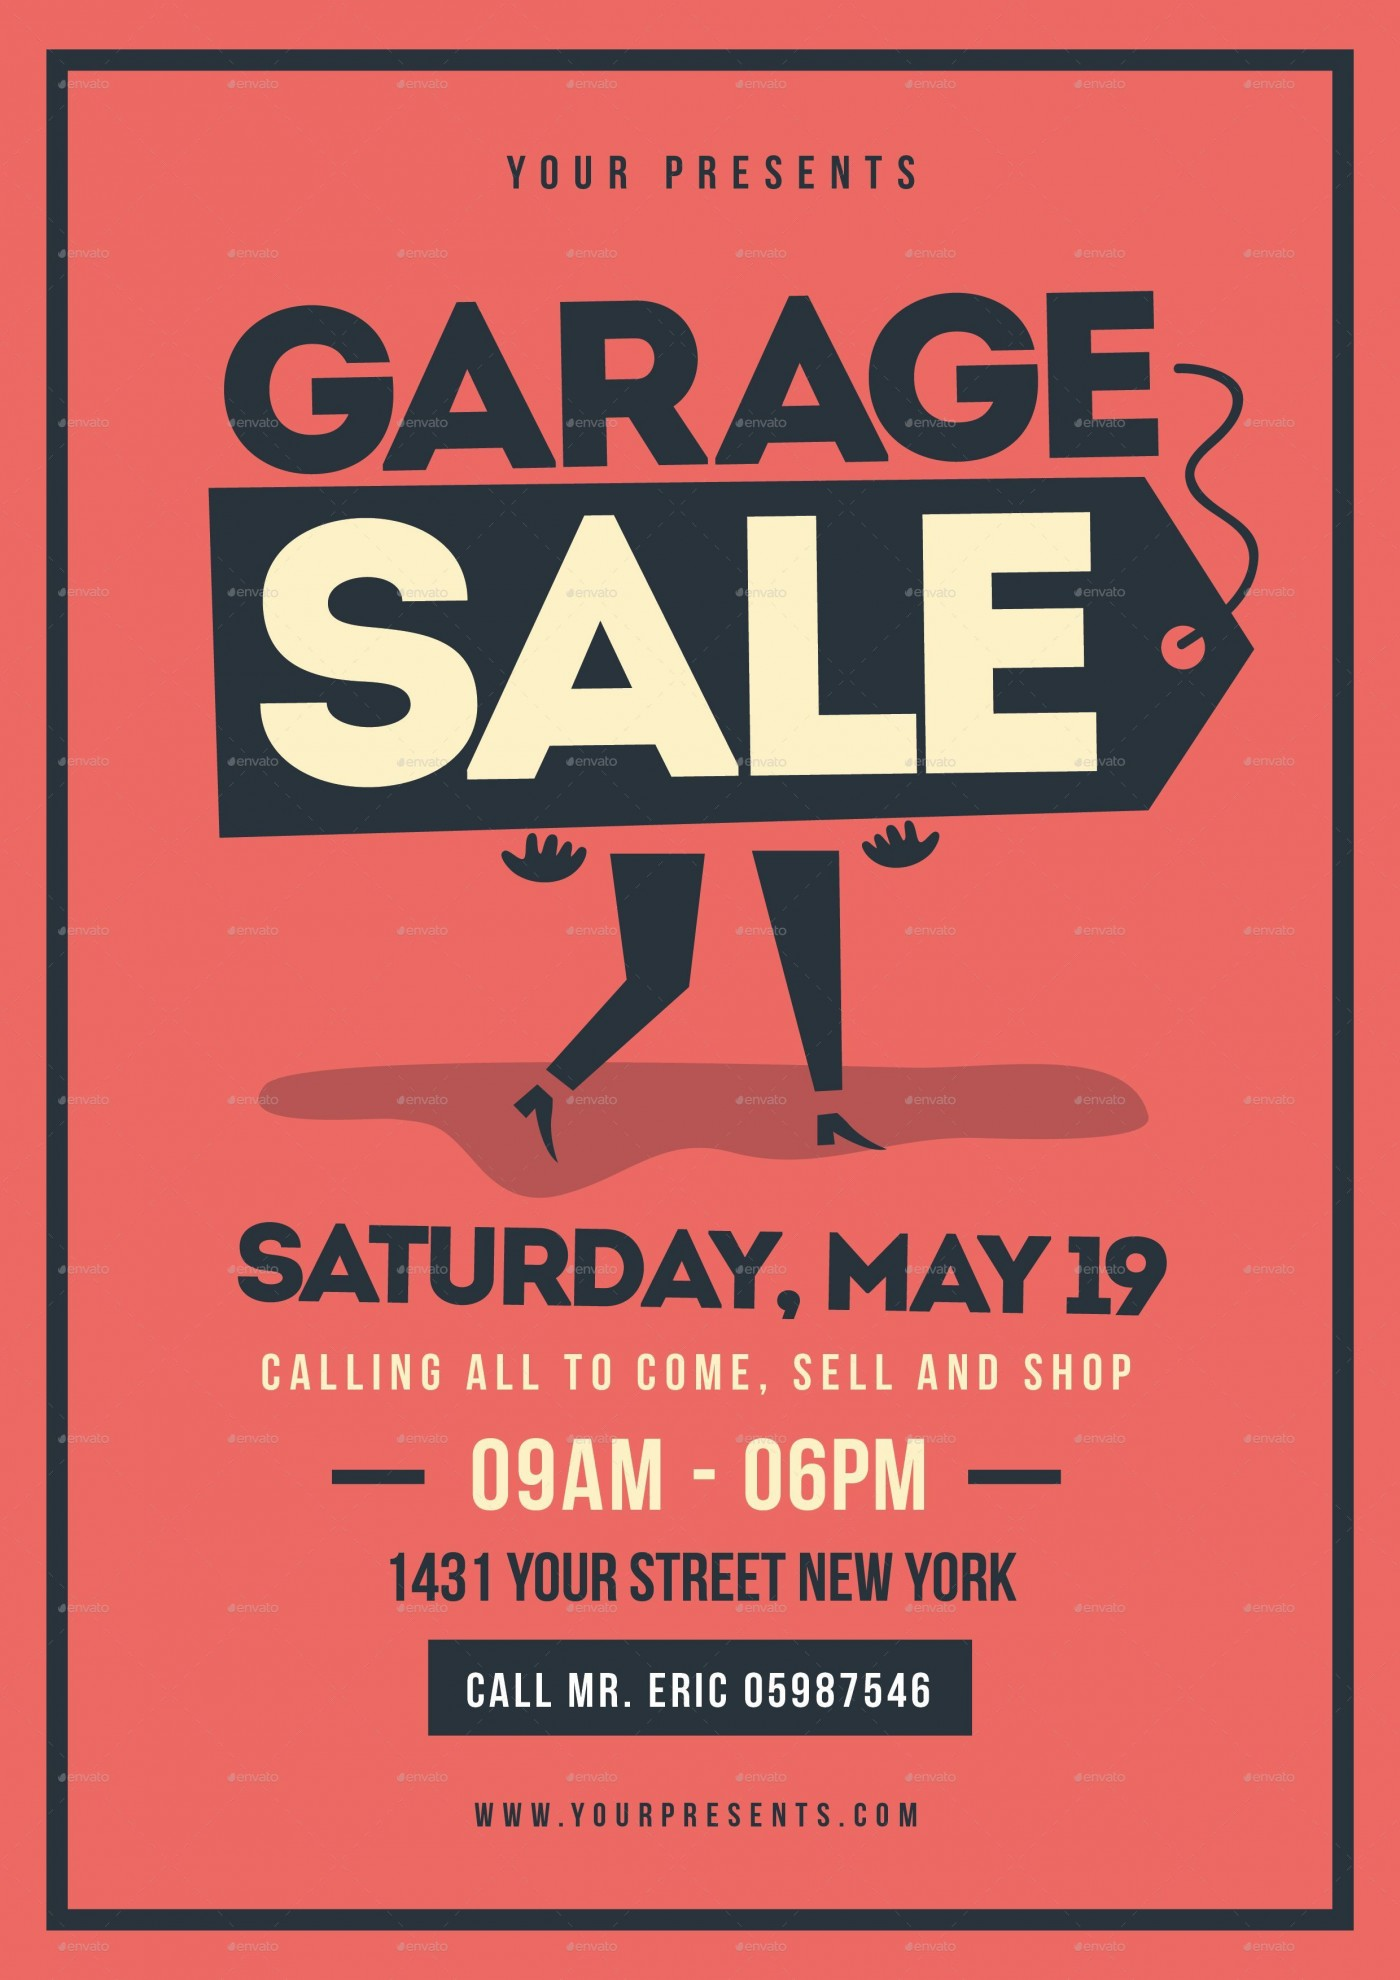 003 Stupendou Garage Sale Sign Template Image  Flyer Microsoft Word Community Yard Free Rummage1400